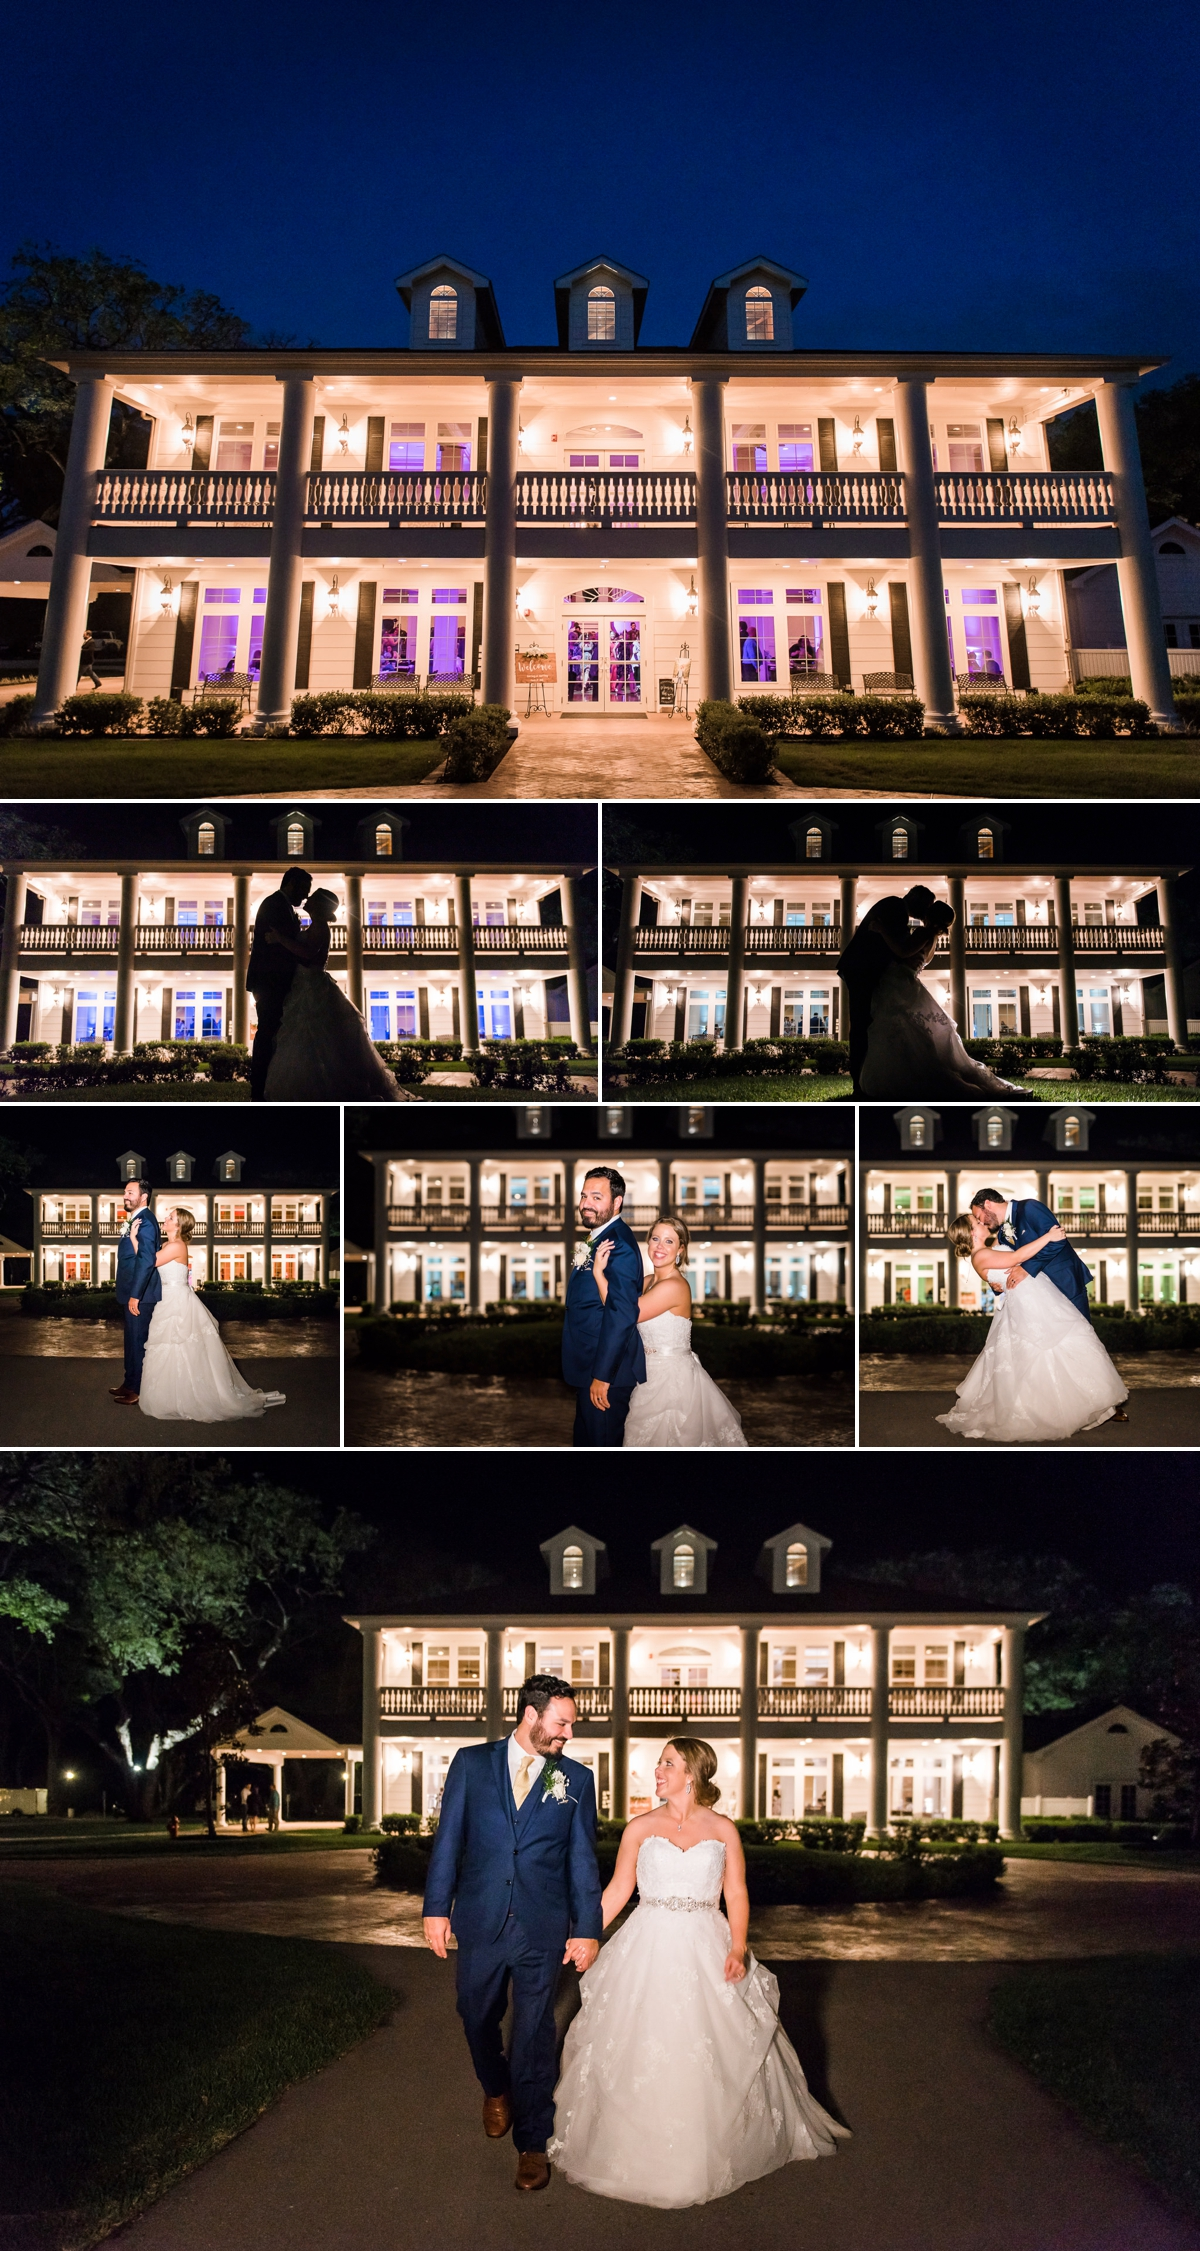 Magnolia Manor Wedding Night Portraits with Bride and Groom